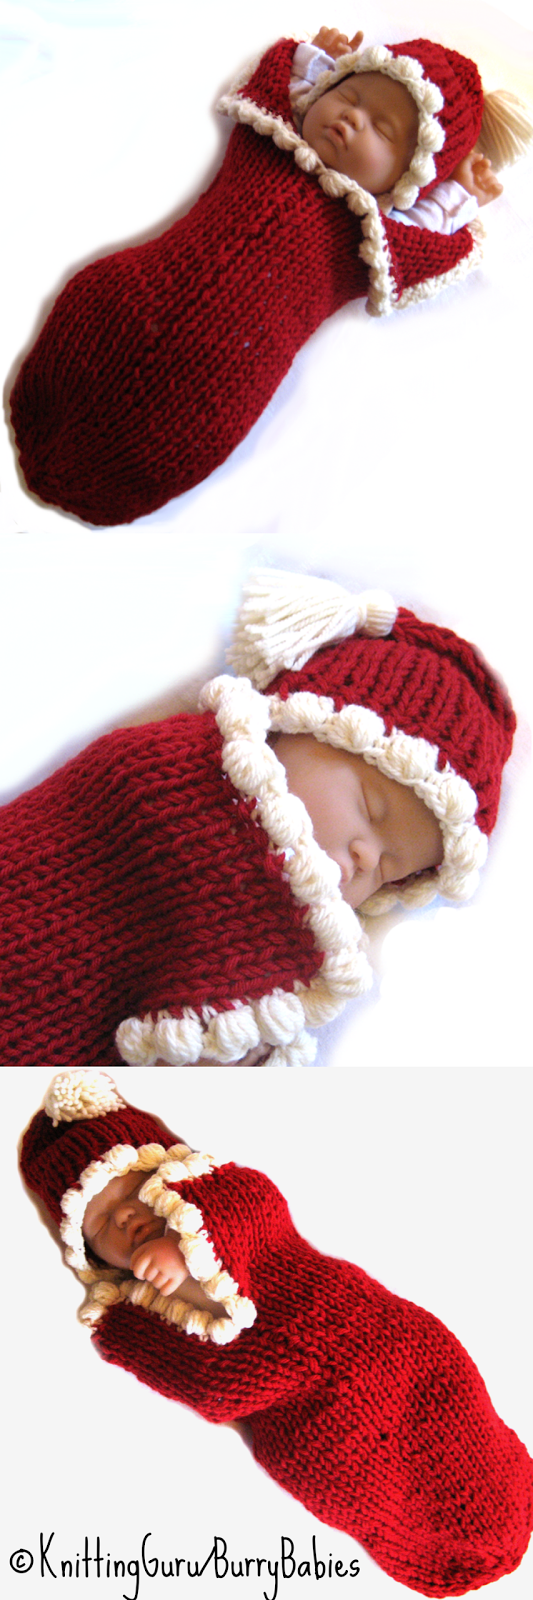 http://www.craftsy.com/pattern/knitting/accessory/baby-bobbles-cocoon--hat---fast--easy/39334